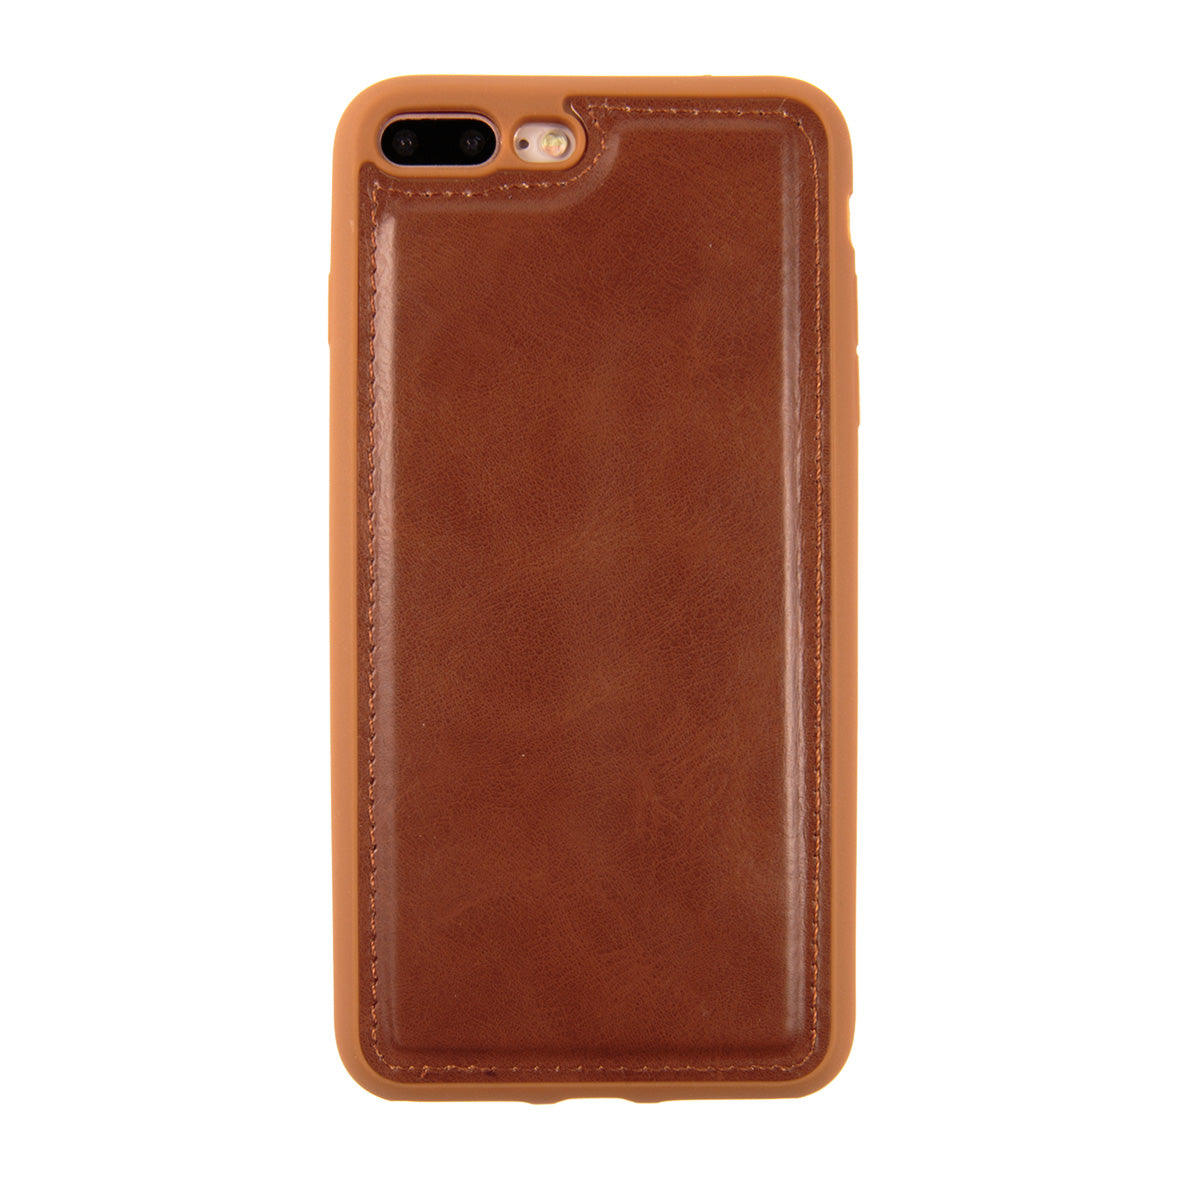 Leather detachable wallet case with card slots iPhone 8+ Plus Case 5.5 inch